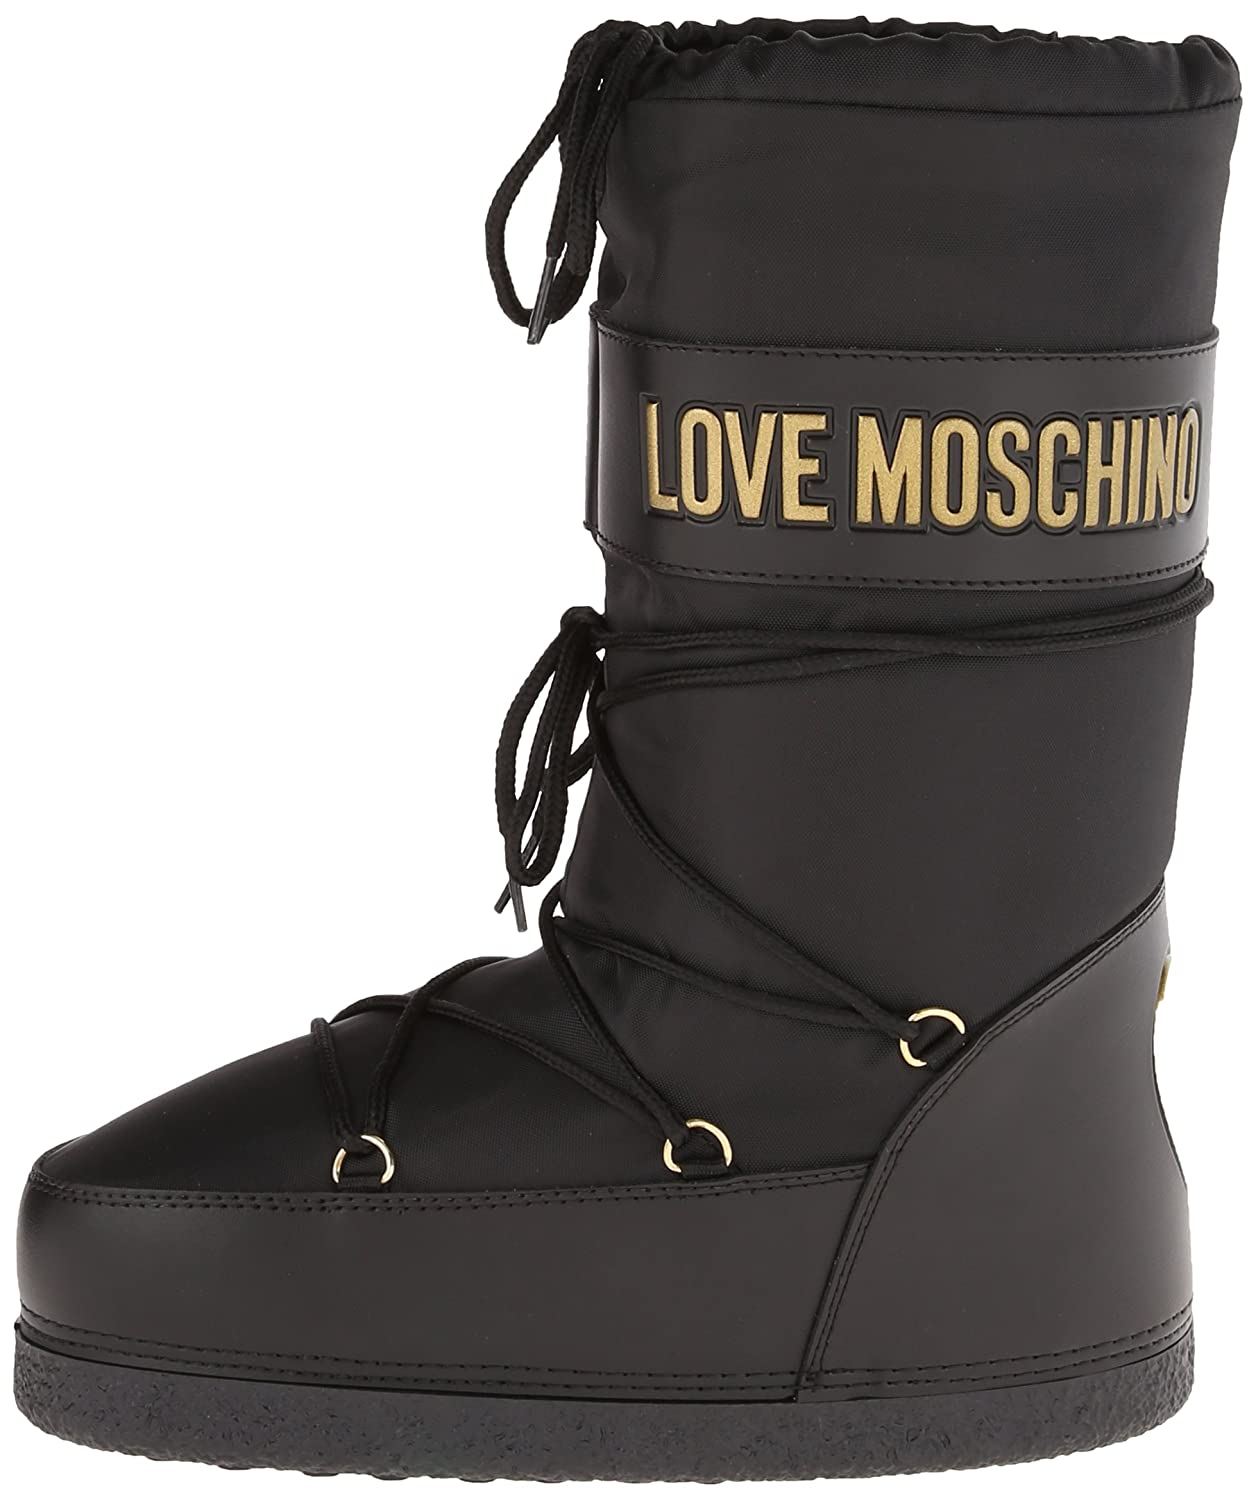 c54aa1737 Amazon.com | Love Moschino Women's Logo Nylon Snow, Black, 36 EU/5.5 ...